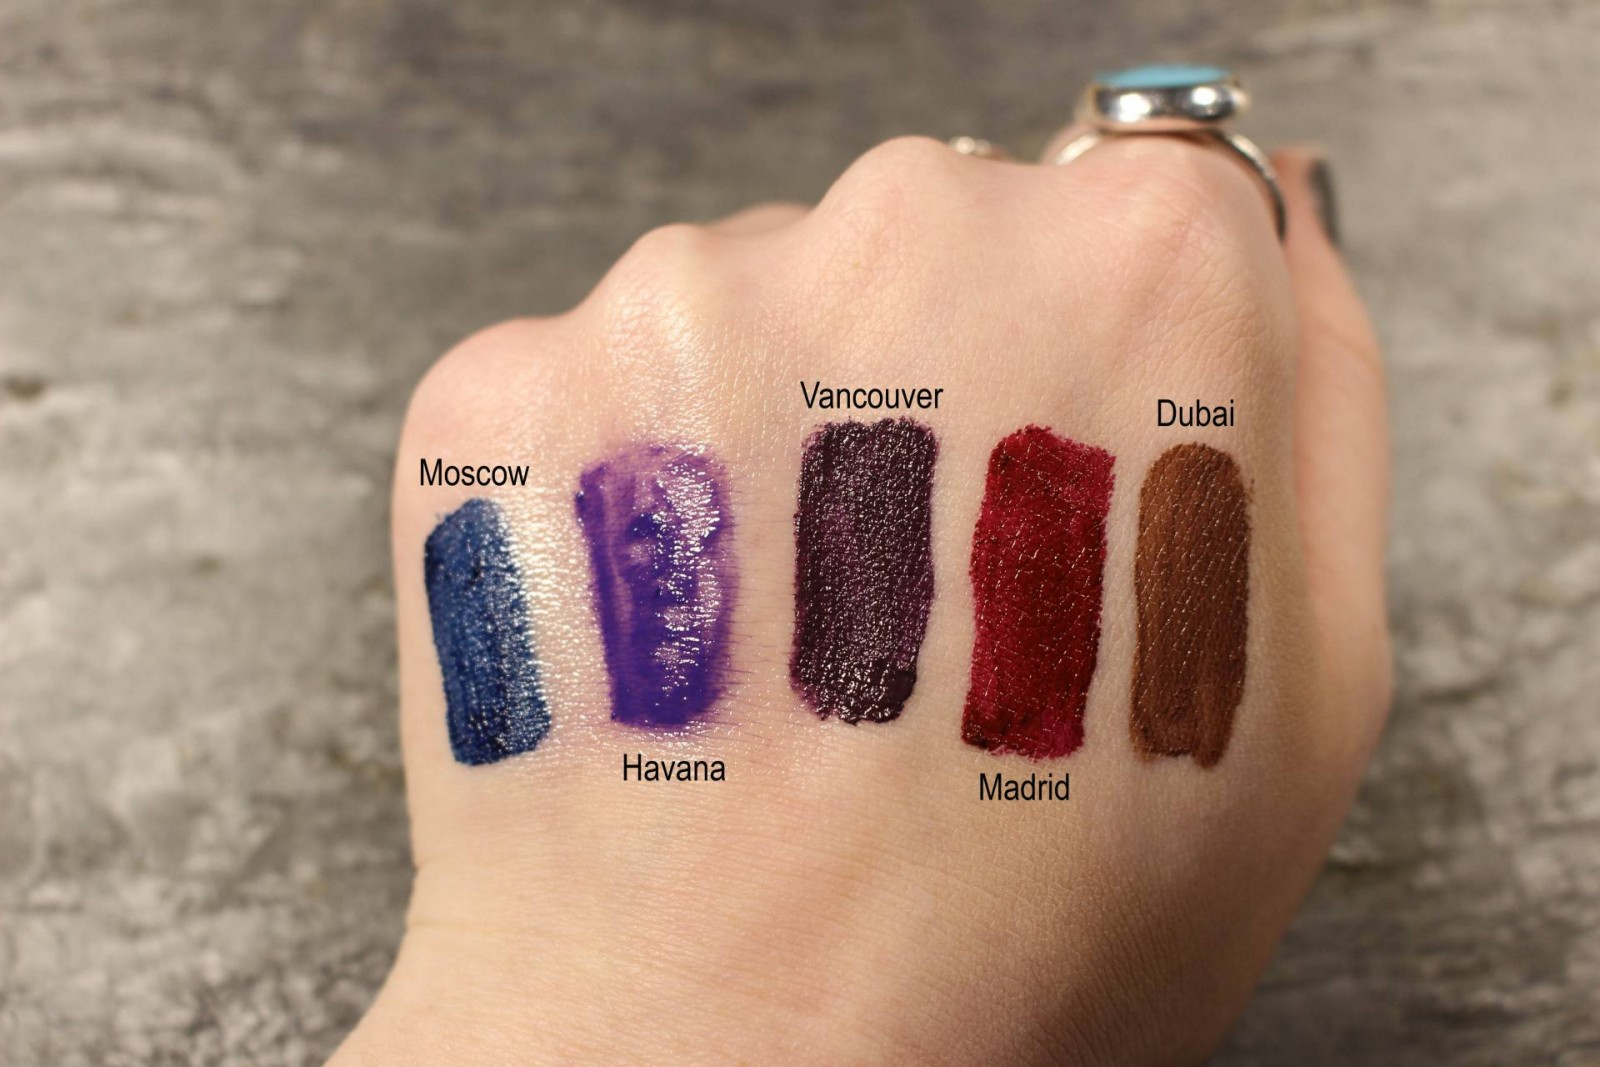 NYX Soft Matte Lip Cream Swatches: New Colors